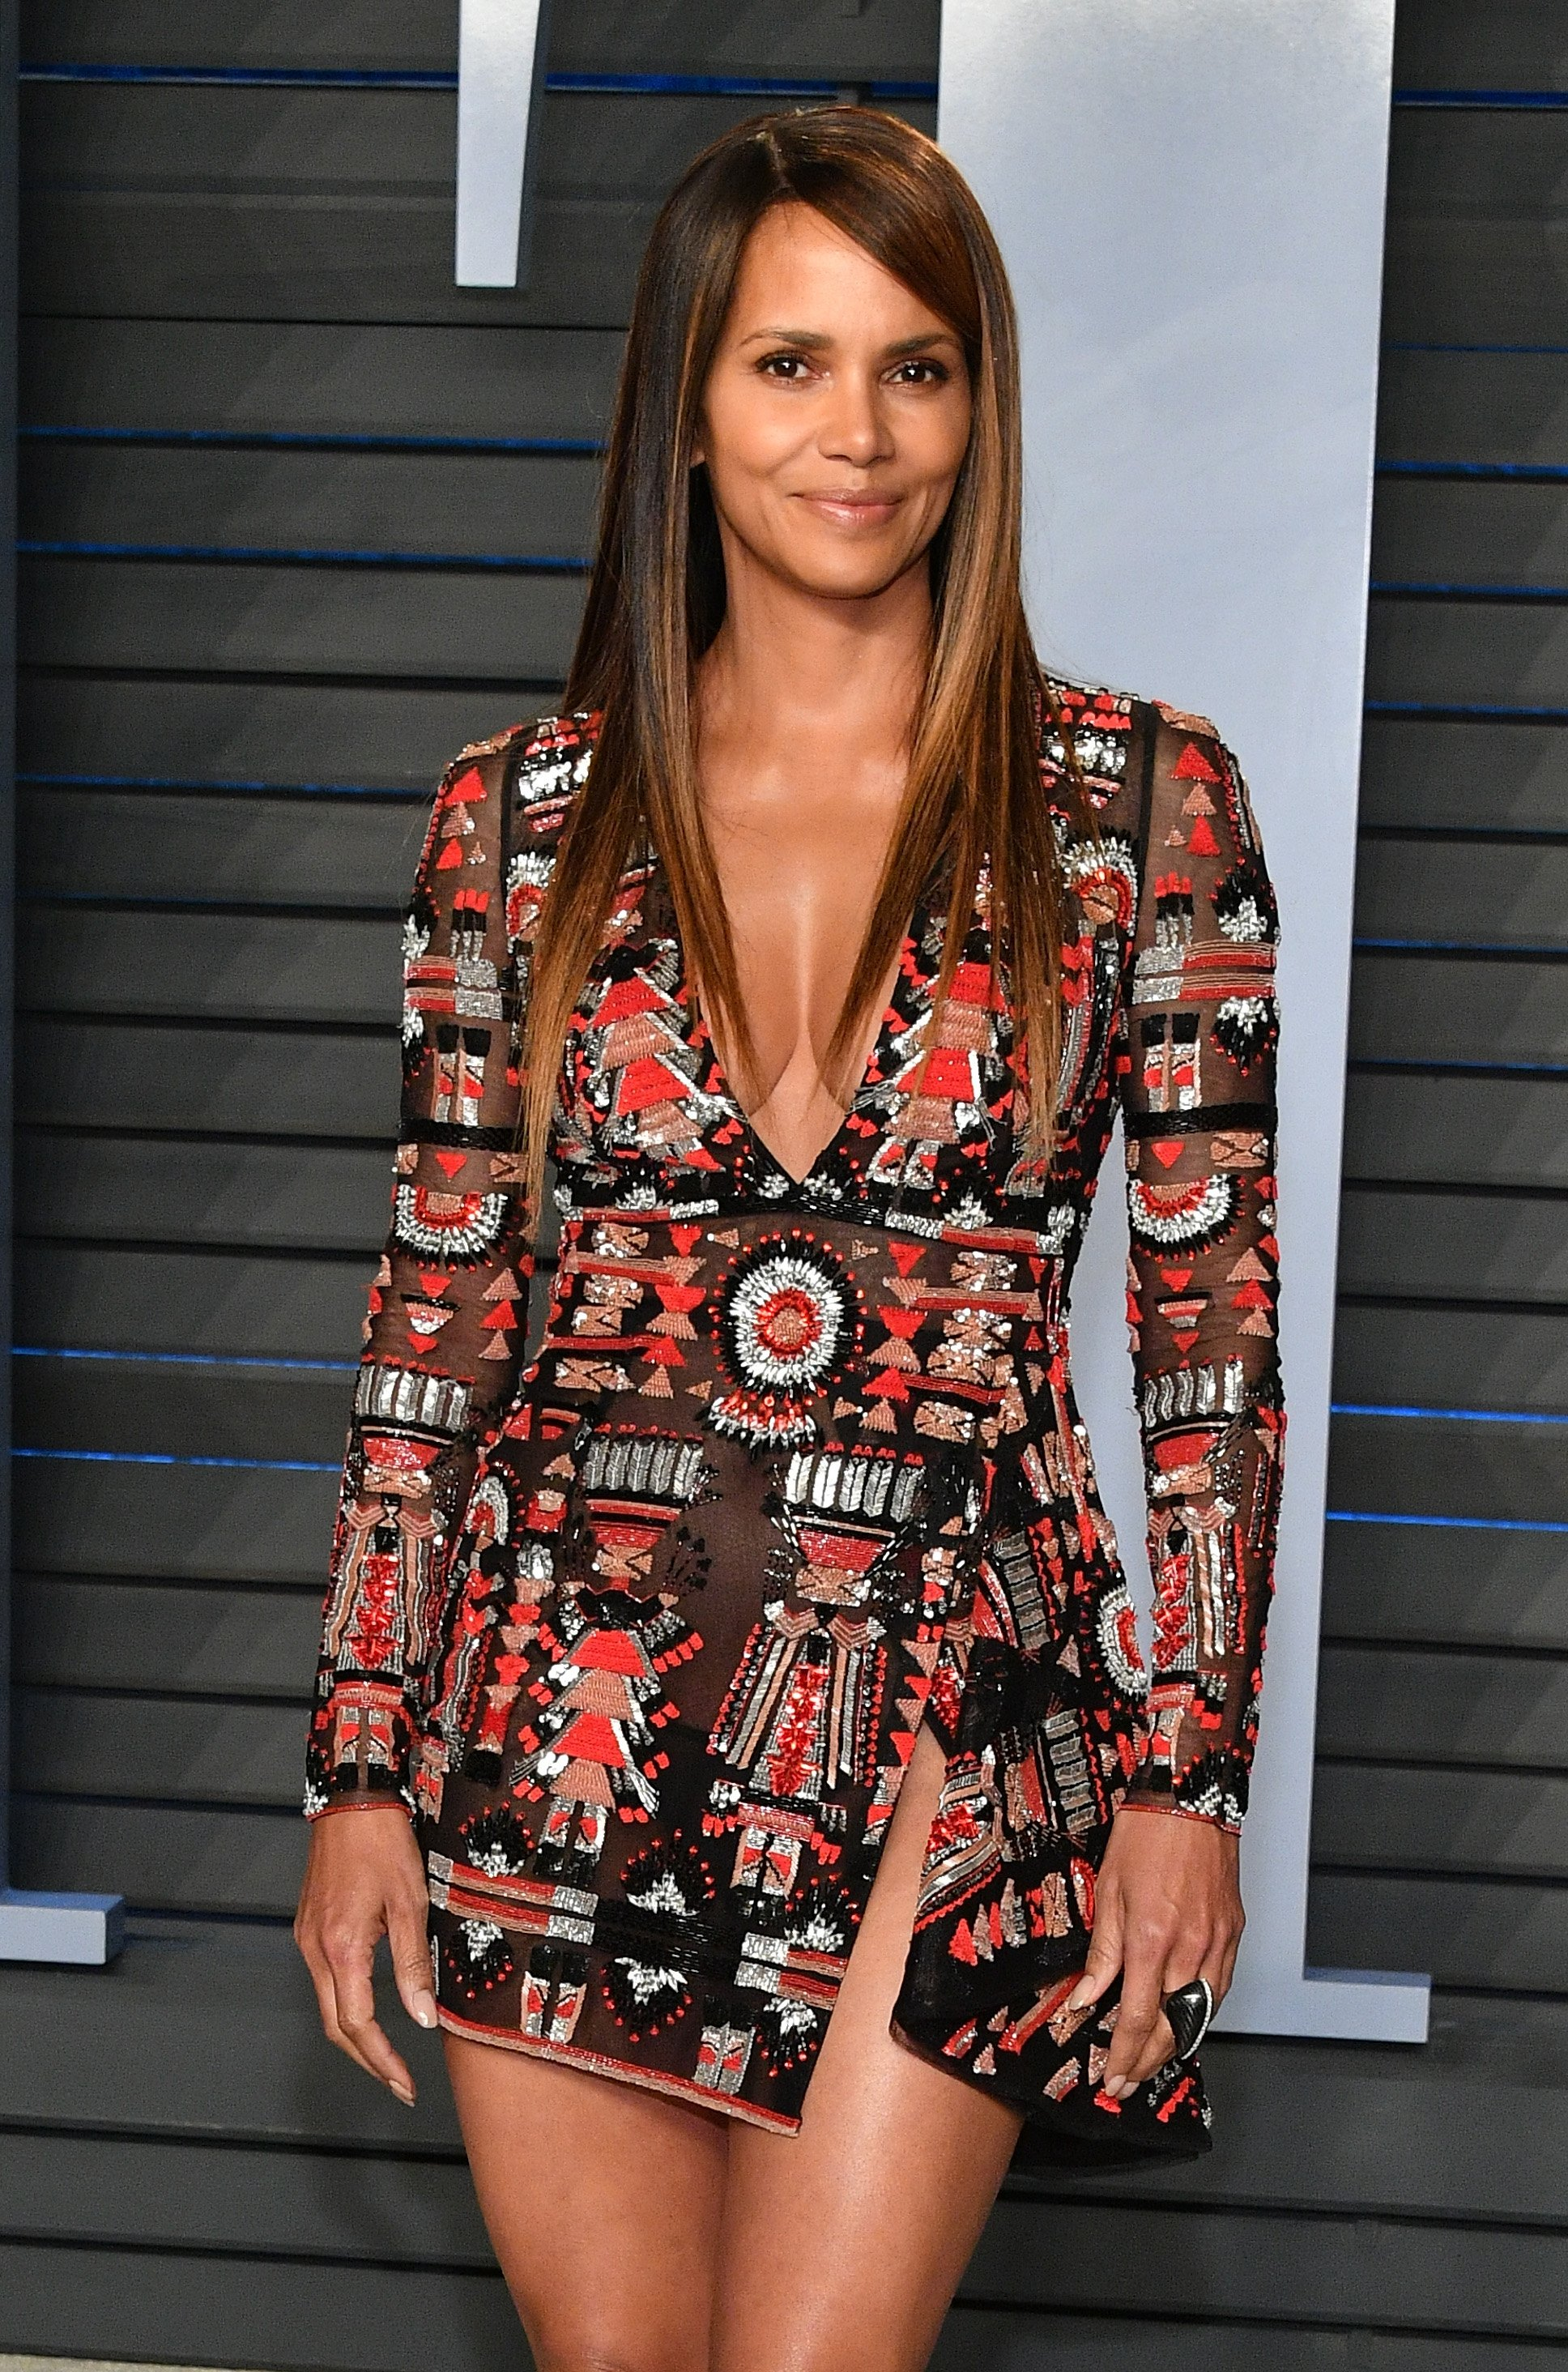 Halle Berry poses at the 2018 Vanity Fair Oscar Party on March 4, 2018 in Beverly Hills, California. | Source: Getty Images